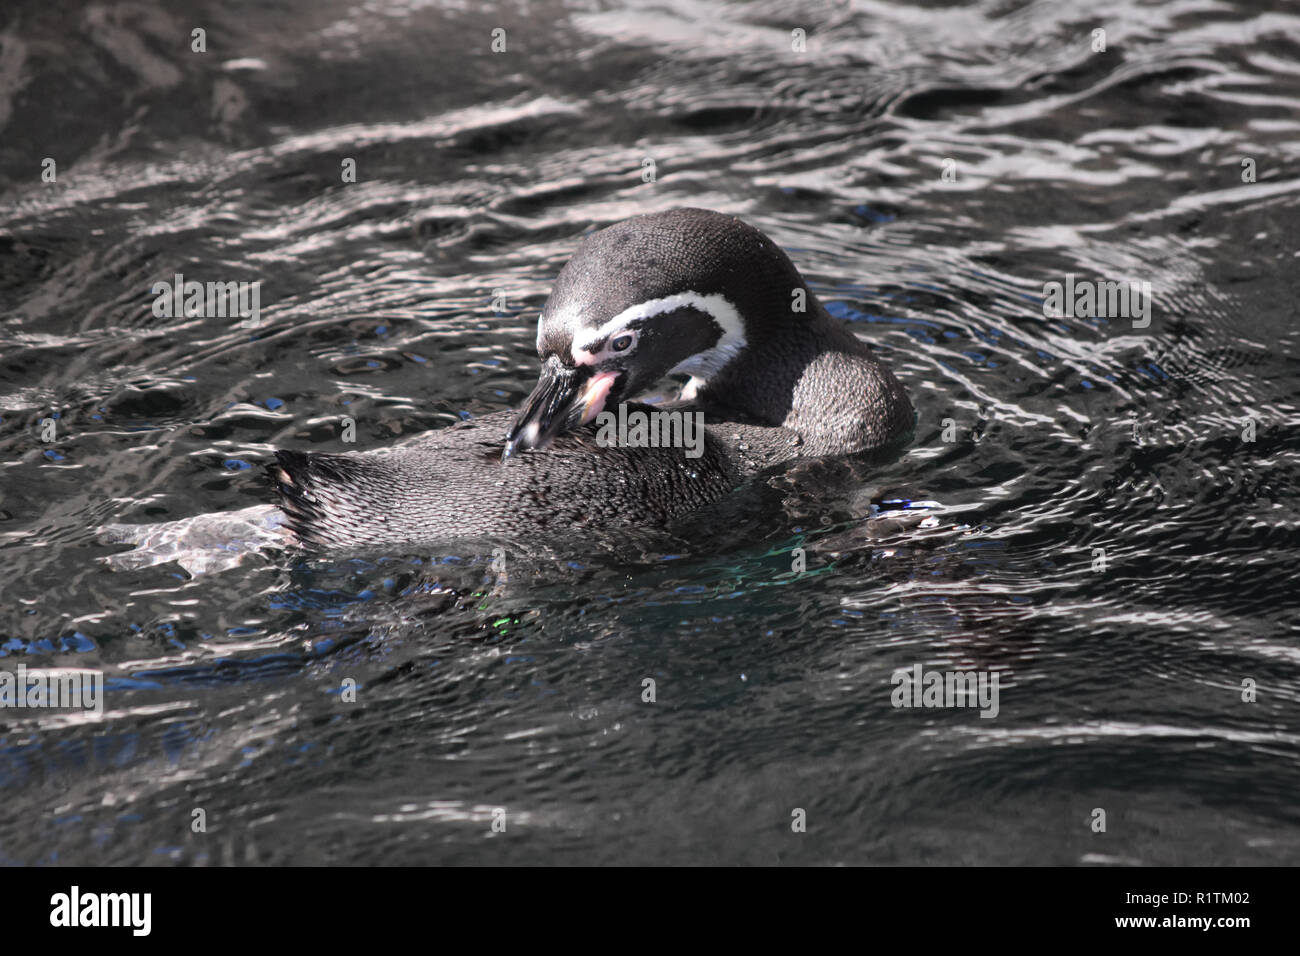 Cute gentoo penguin swimming in a pond - Stock Image